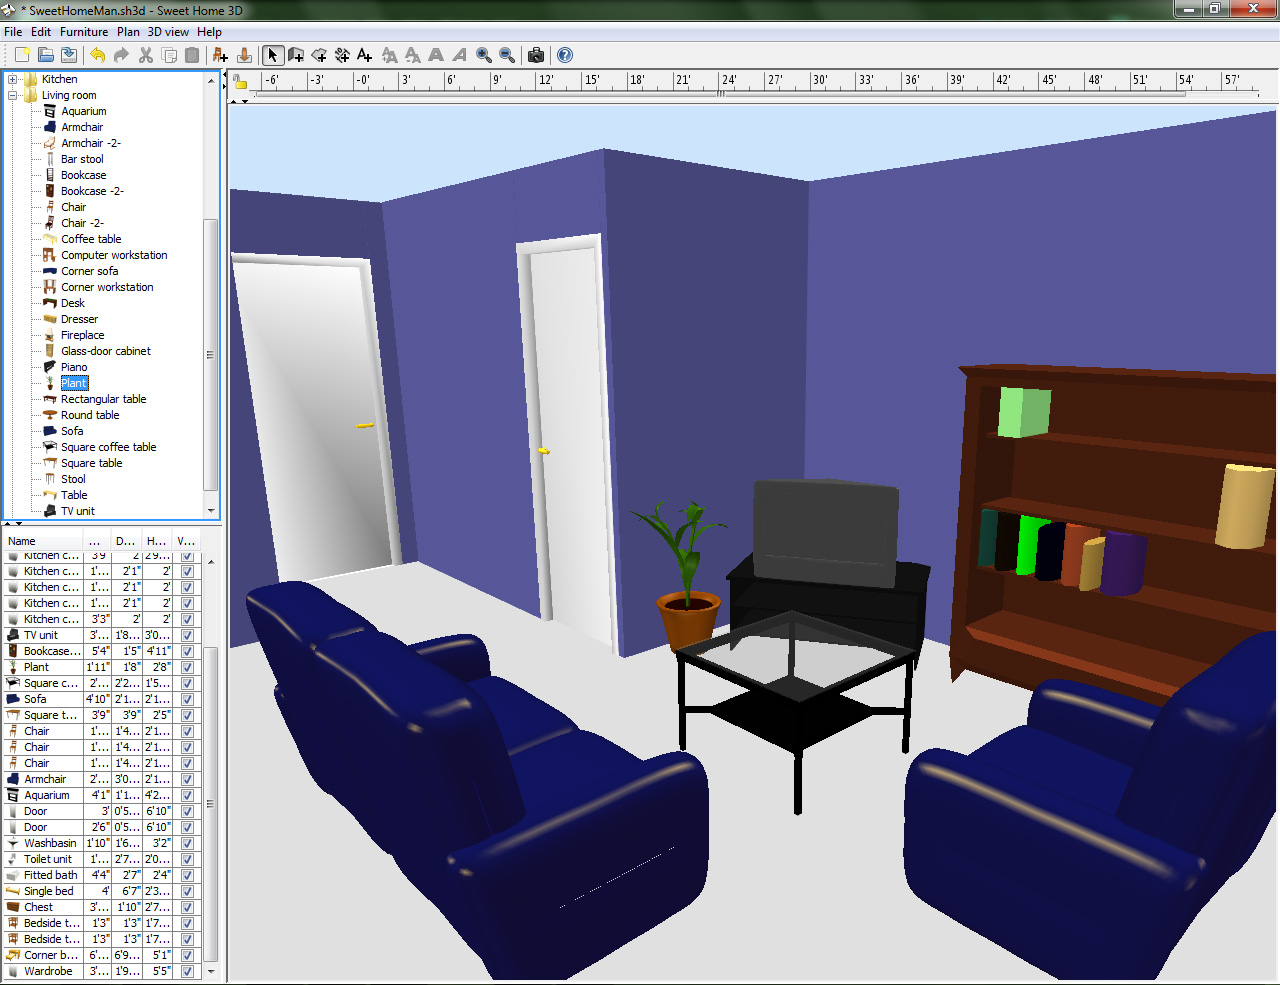 House interior design software 3d layout design software free